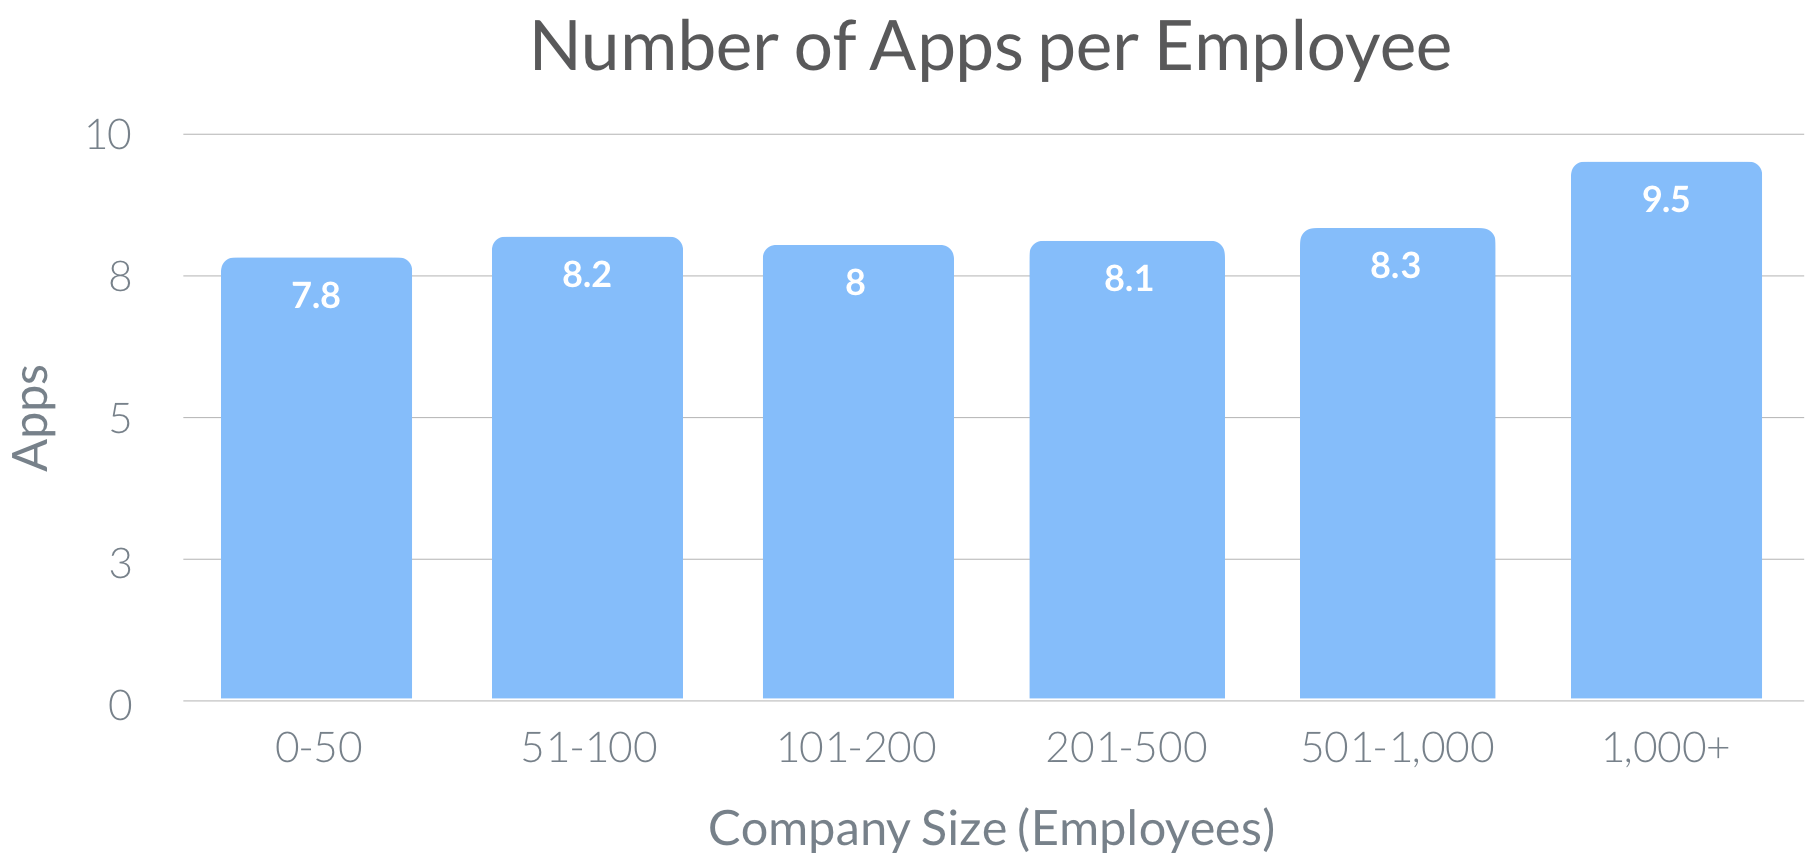 Number of Apps per Employee